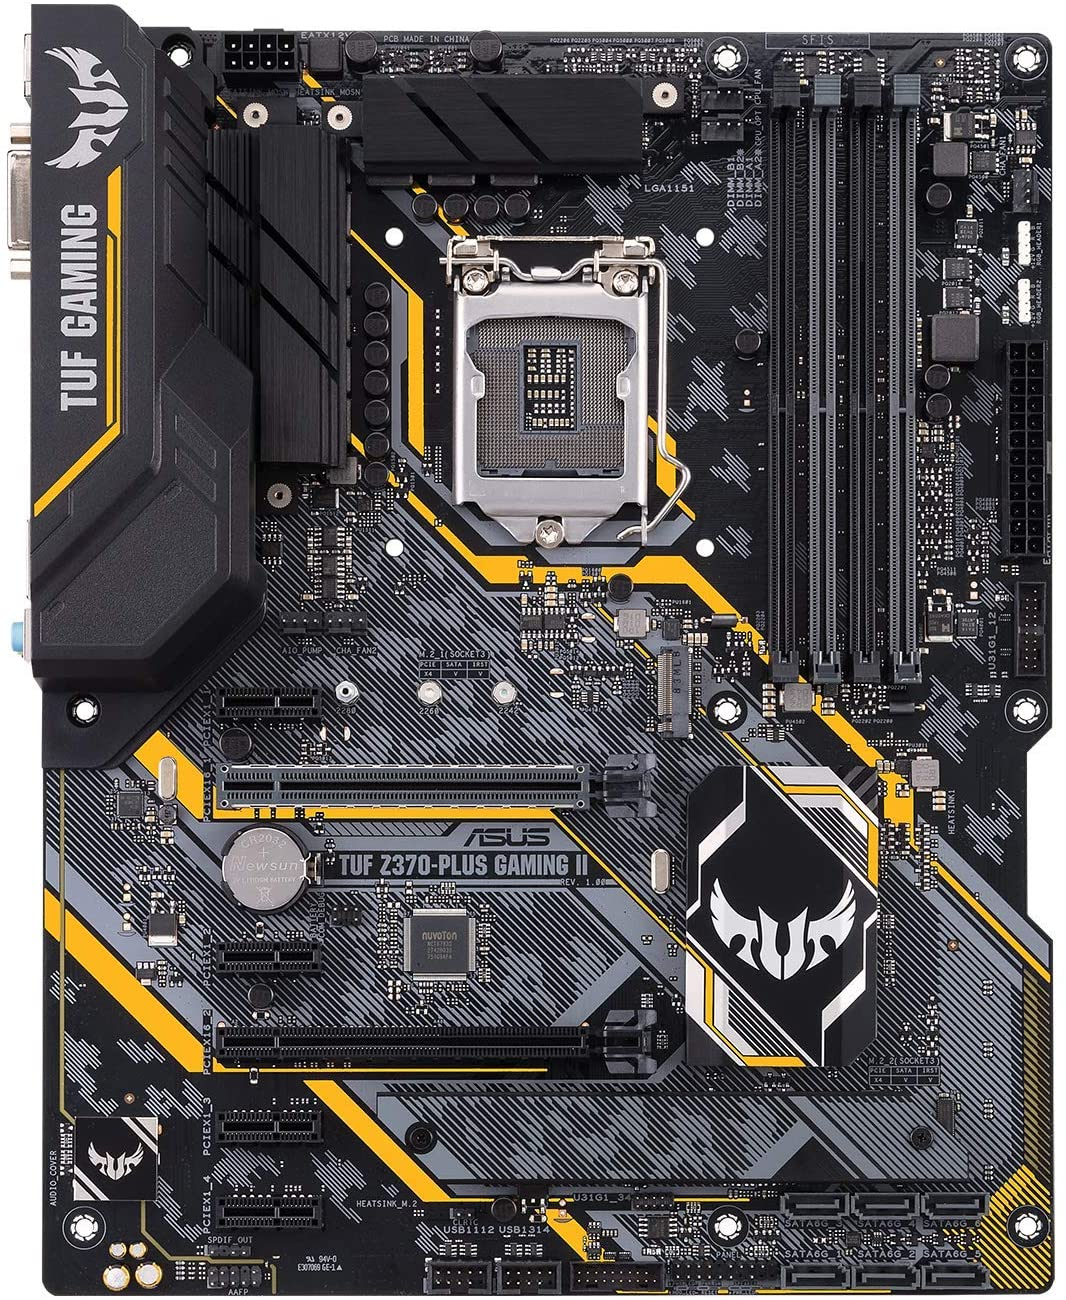 Small product image of ASUS TUF Z370-PLUS Gaming